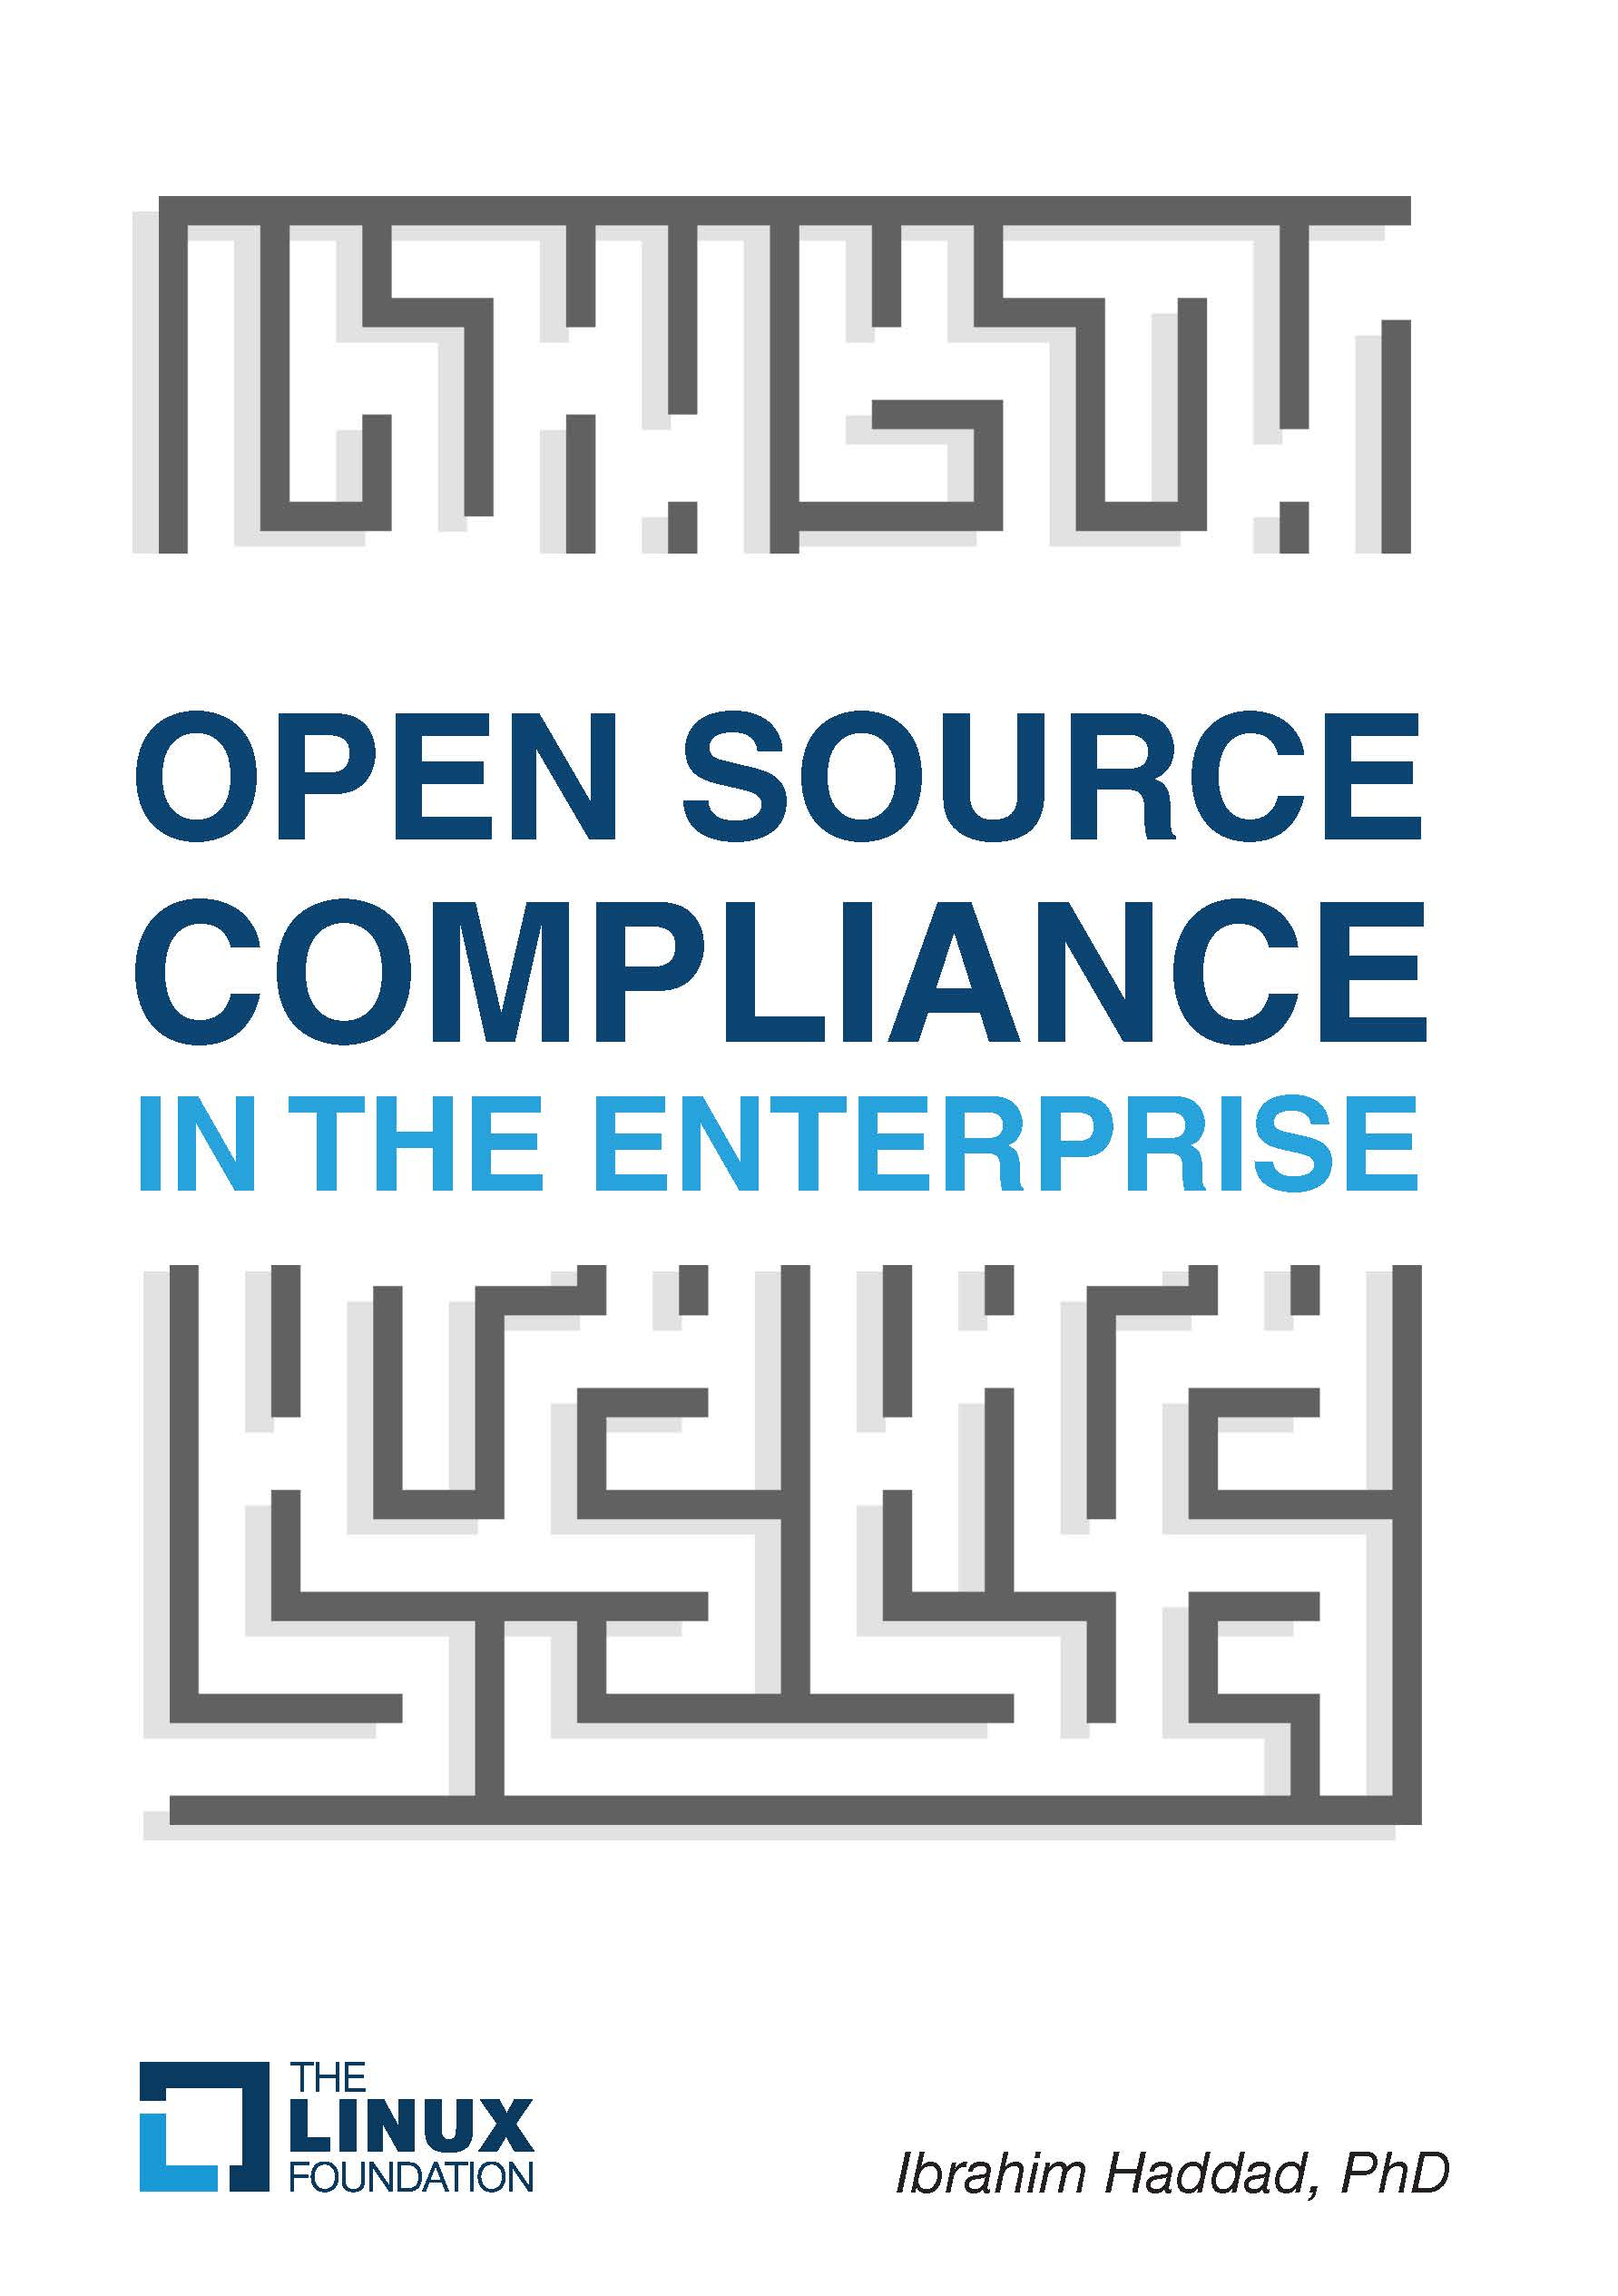 The Linux Foundation Issues Free E-Book on Open Source